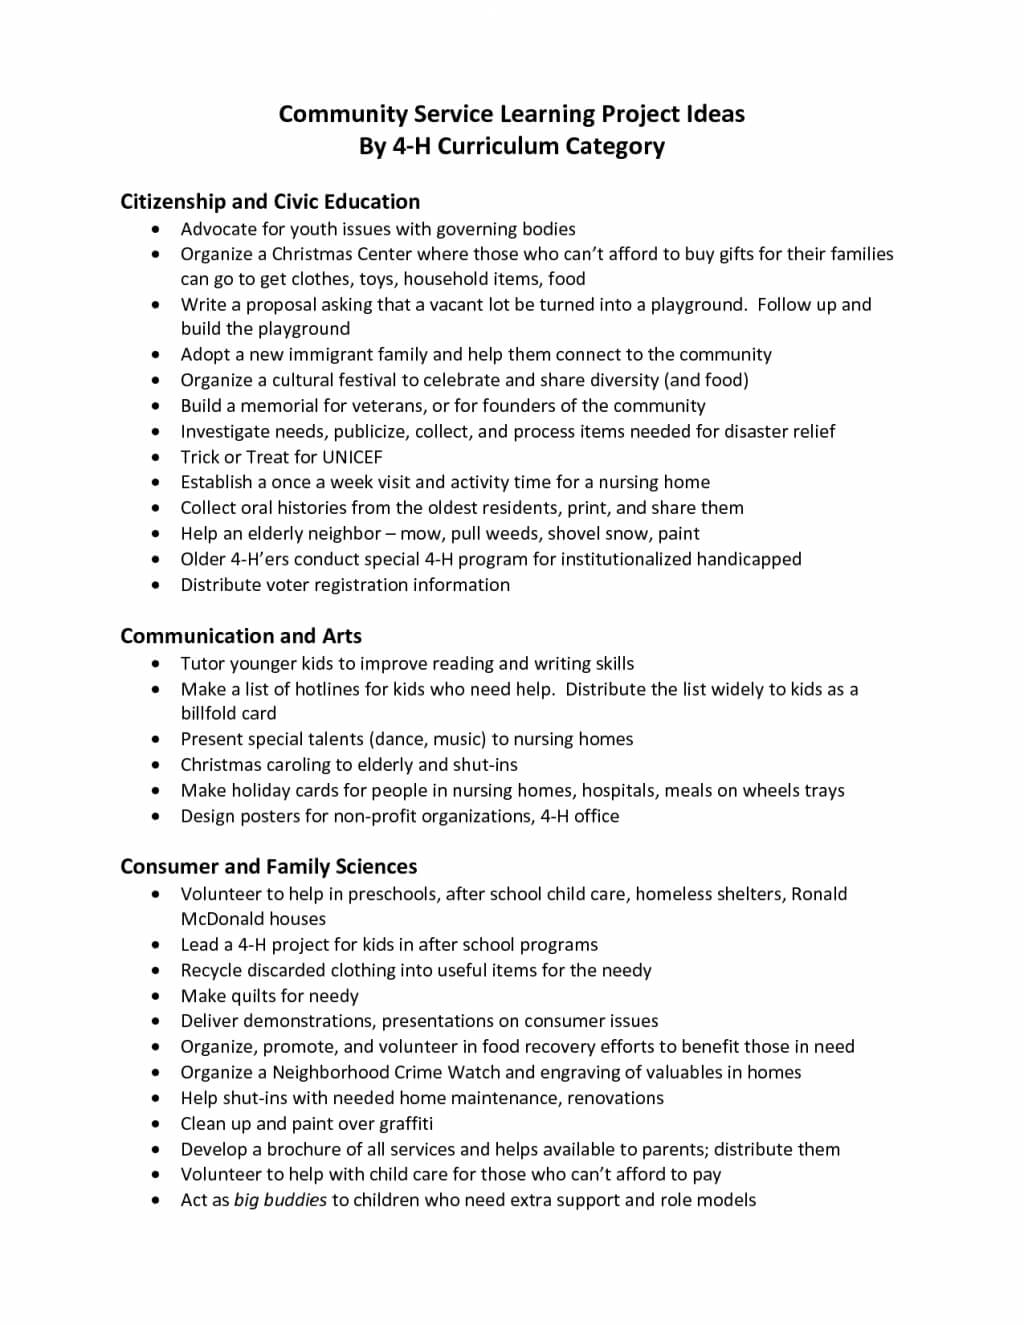 Service Proposal Help With Writing Project Ghostwriting throughout Community Service Template Word